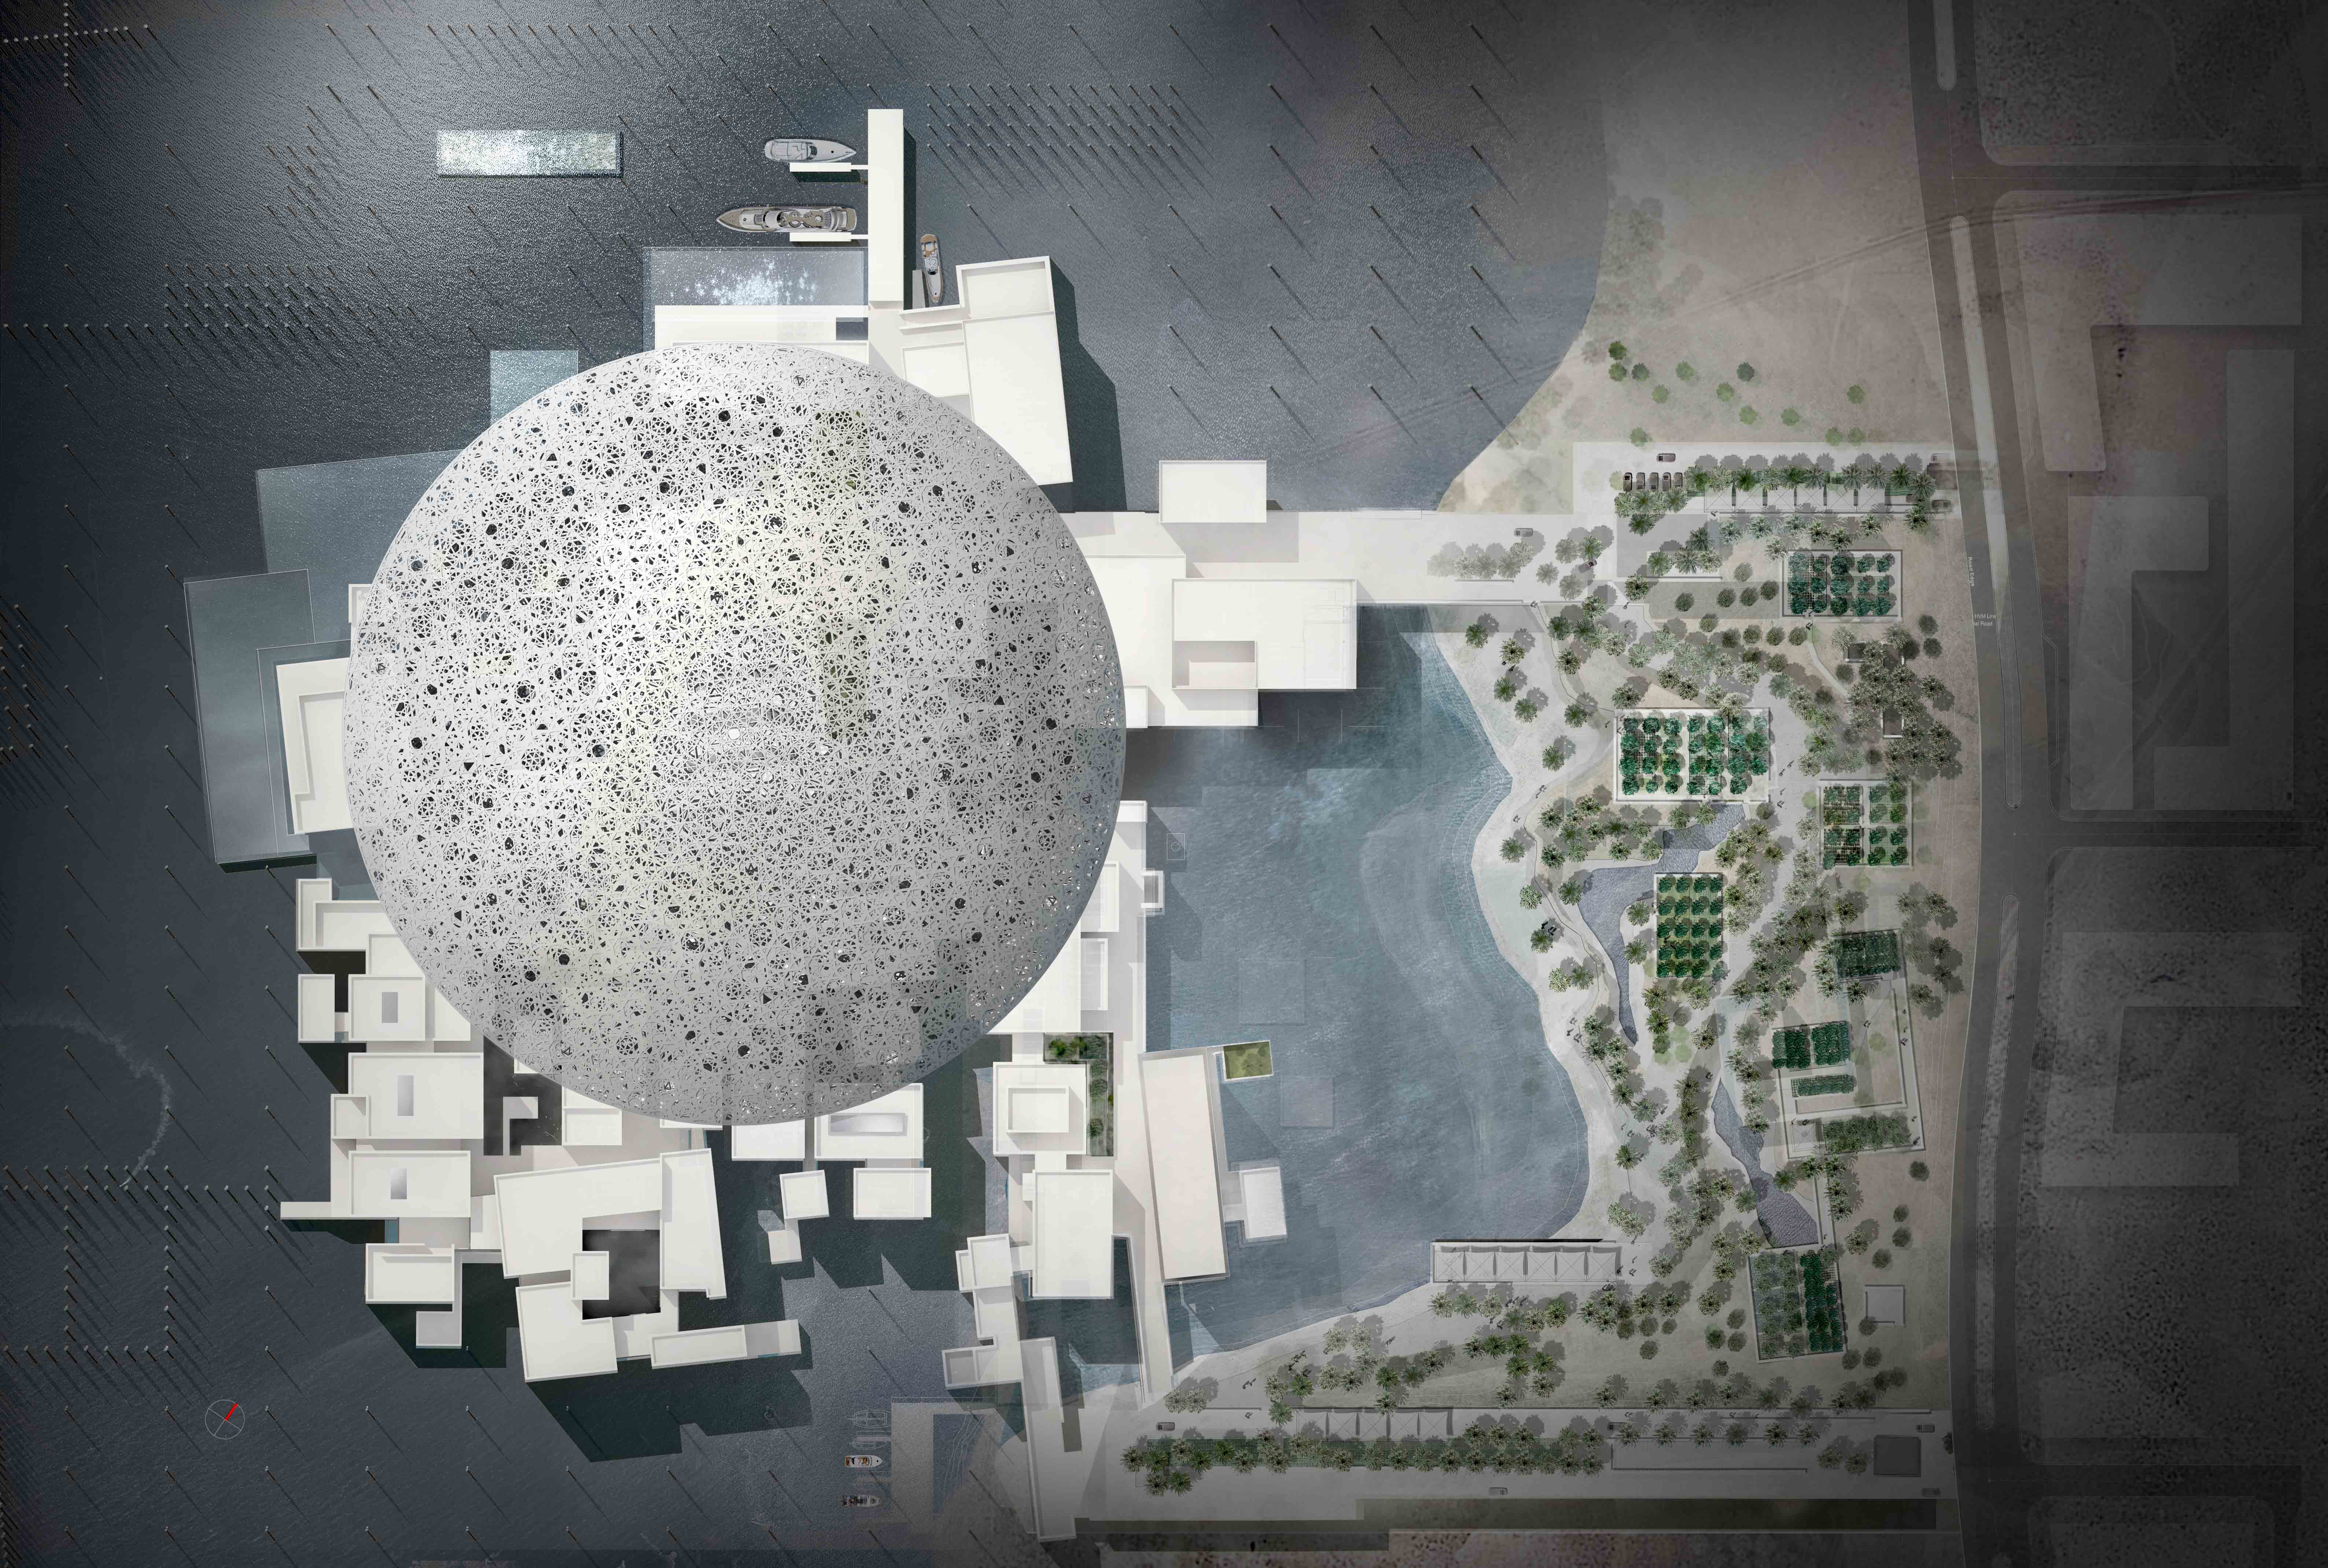 Rendering of an aerial view of the Louvre Abu Dhabi/Courtesy of the Luxury Elitist.